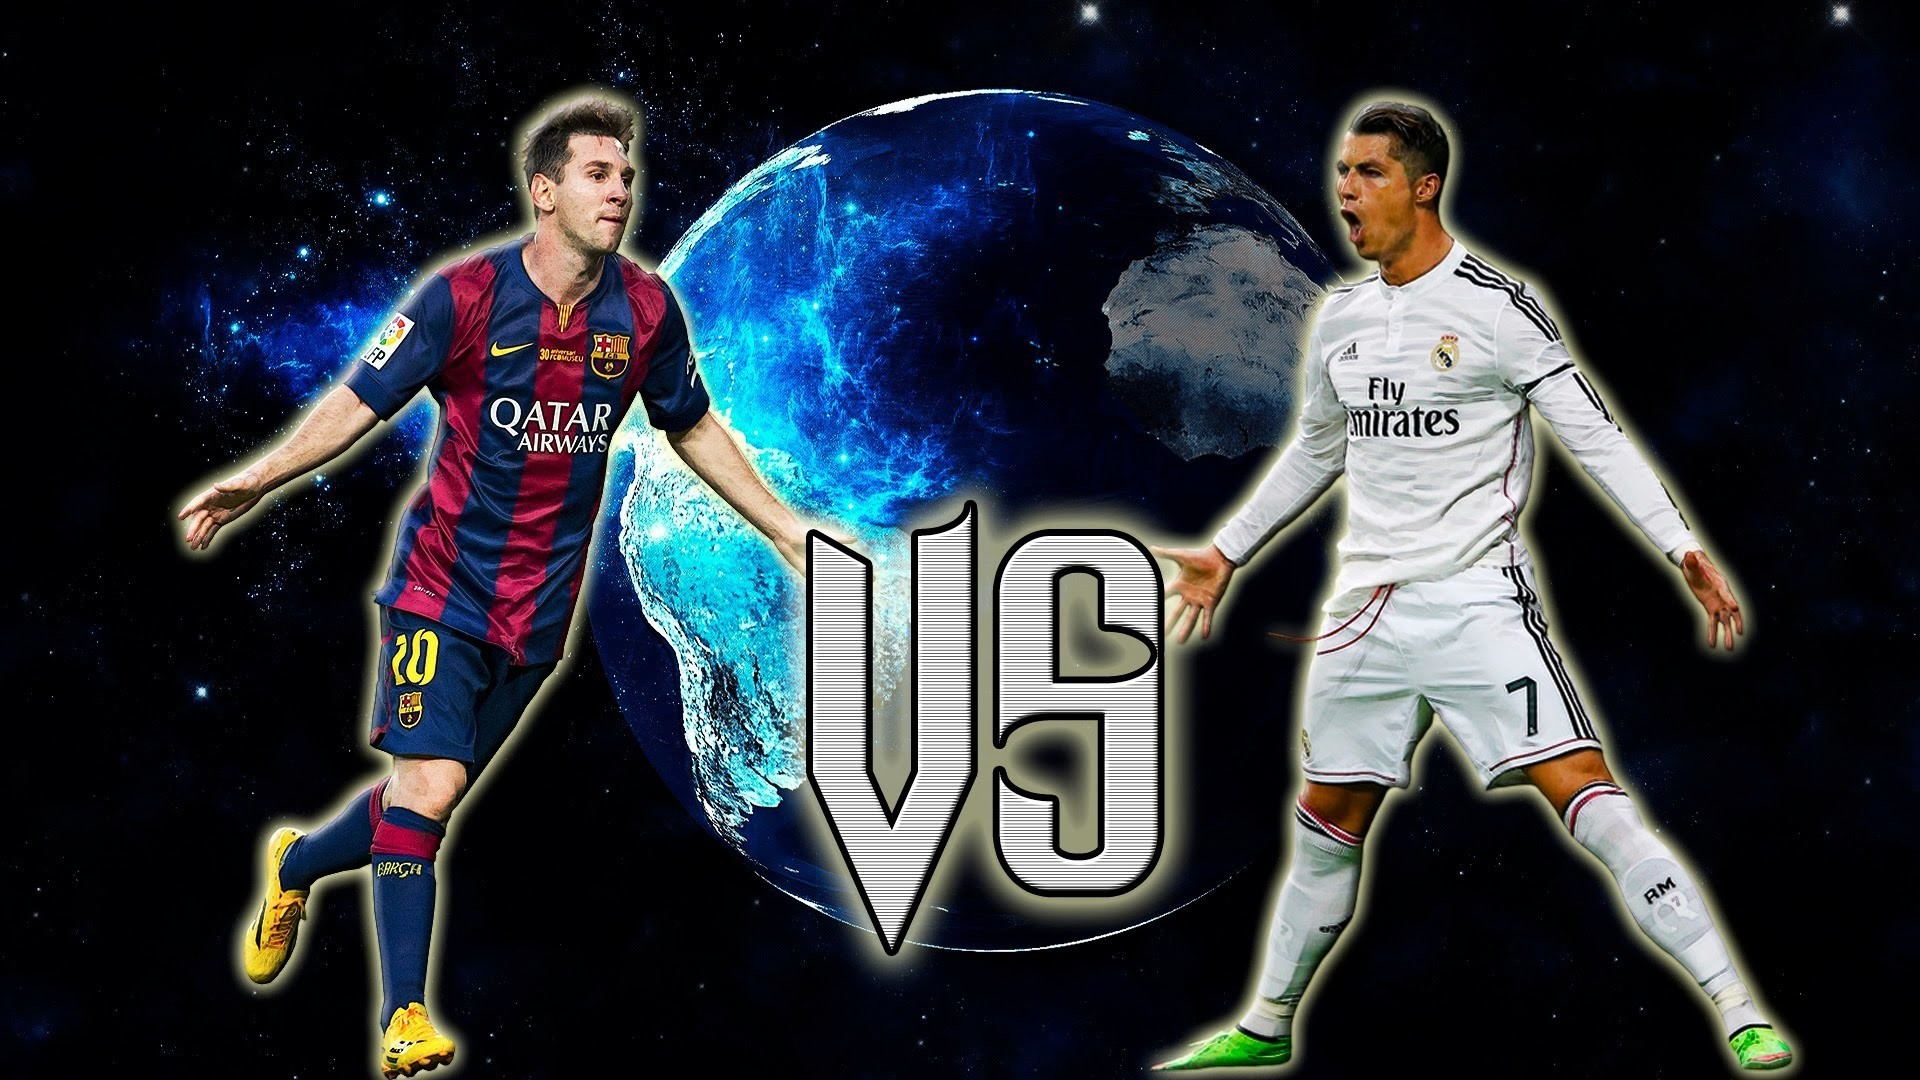 Messi Vs Ronaldo Wallpapers 2018 Hd 82 Background Pictures